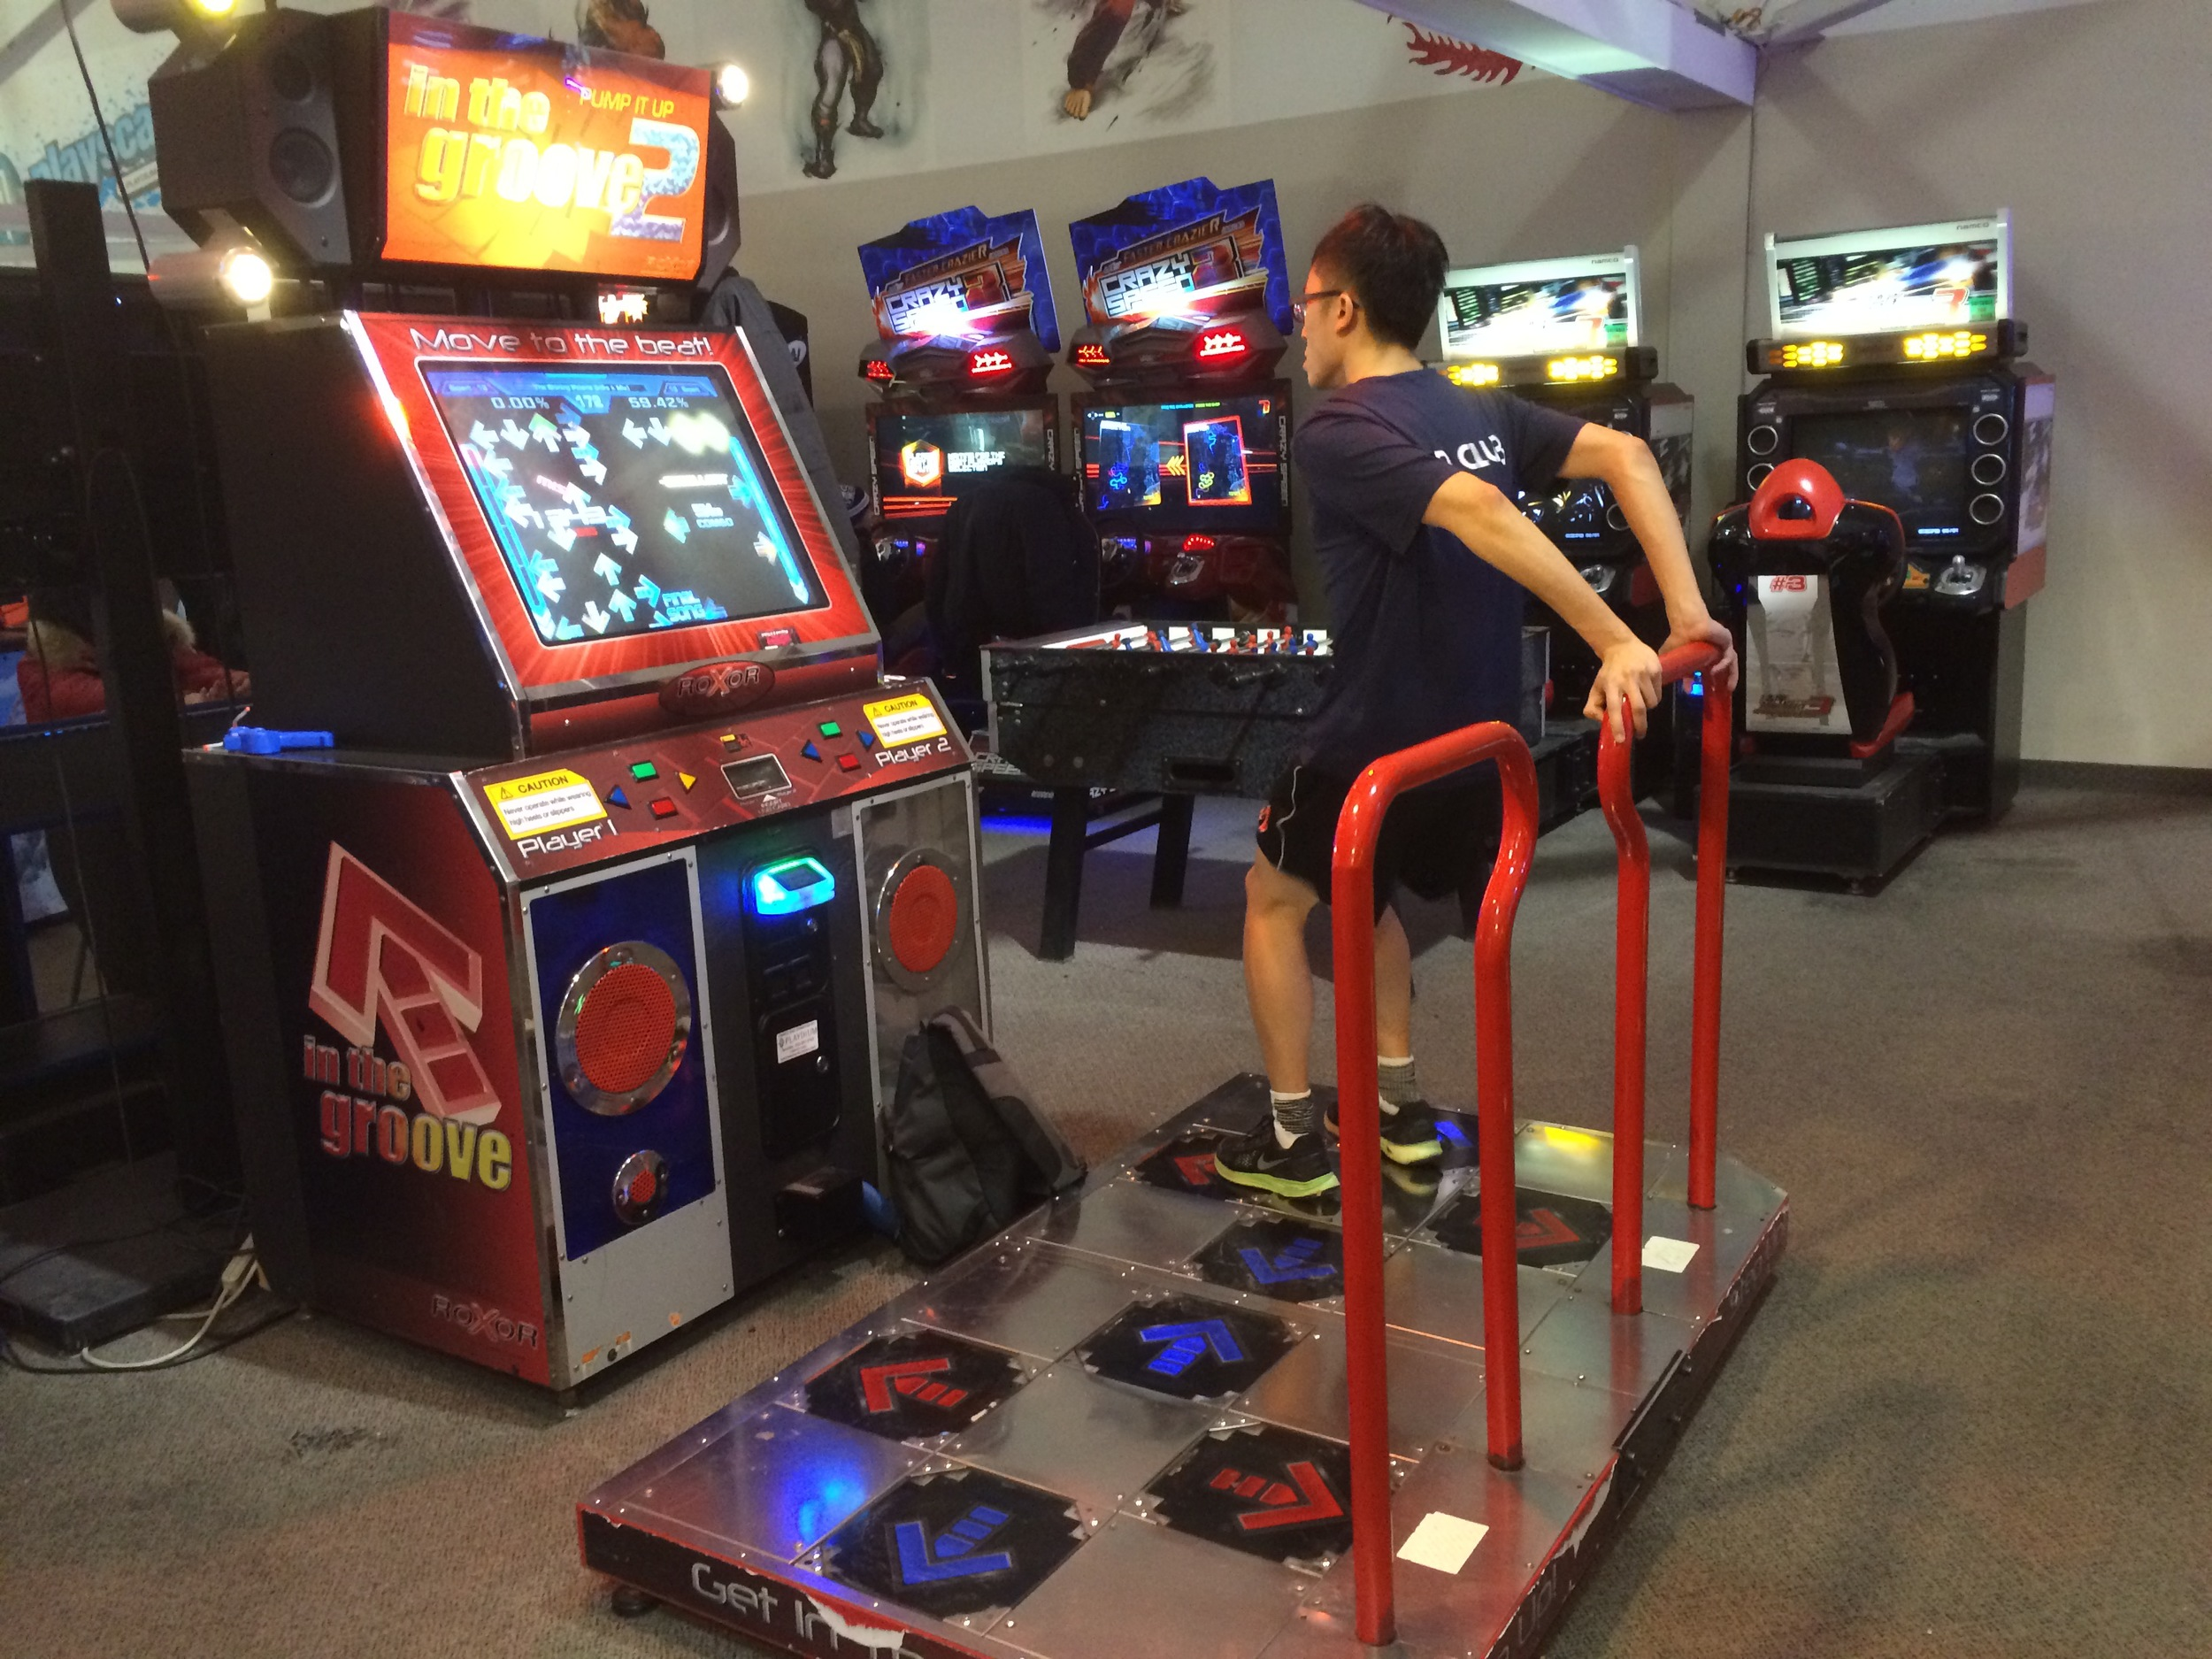 Teen practicing his dance skills at Playscape, the arcade on the second floor at Pacific Mall